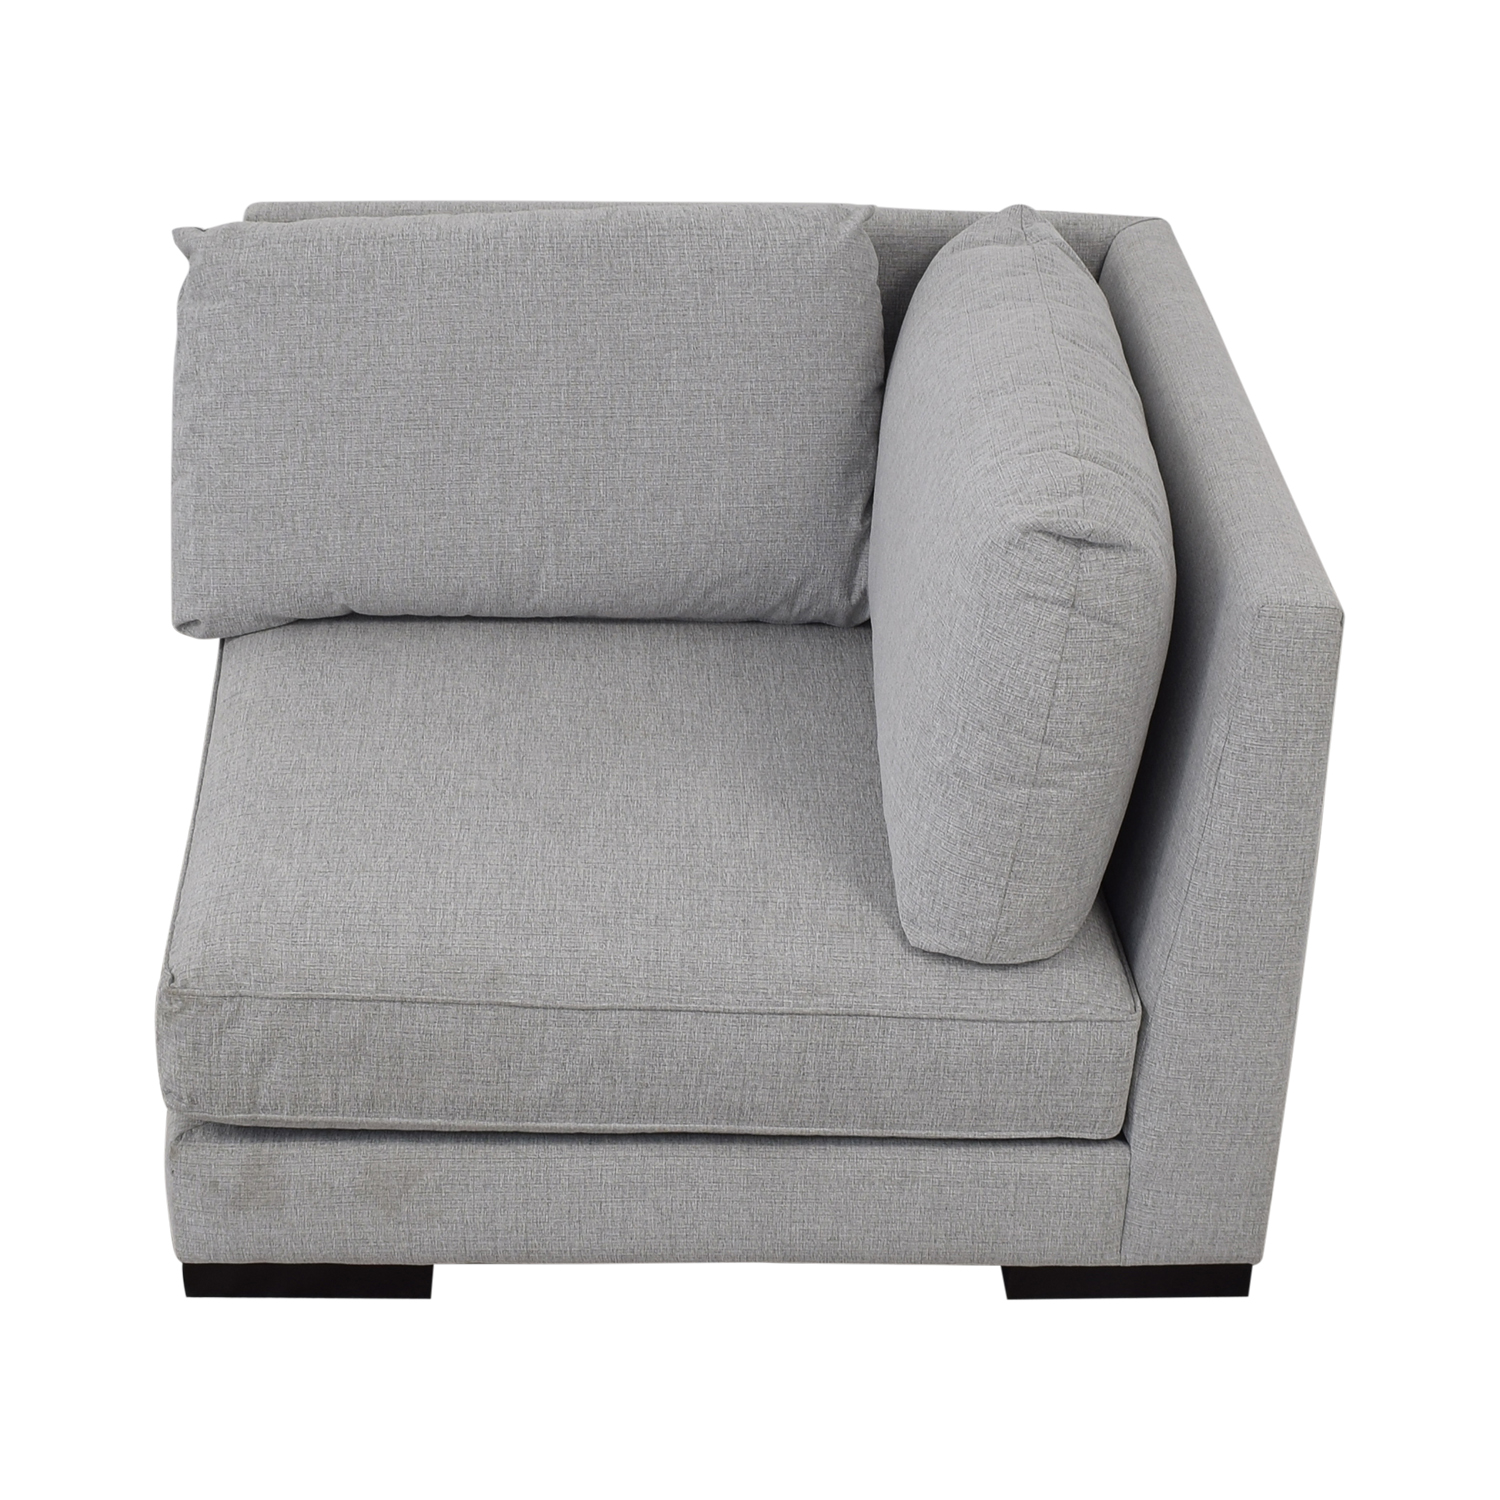 buy Younger Furniture Chill Corner Chair Younger Furniture Chairs